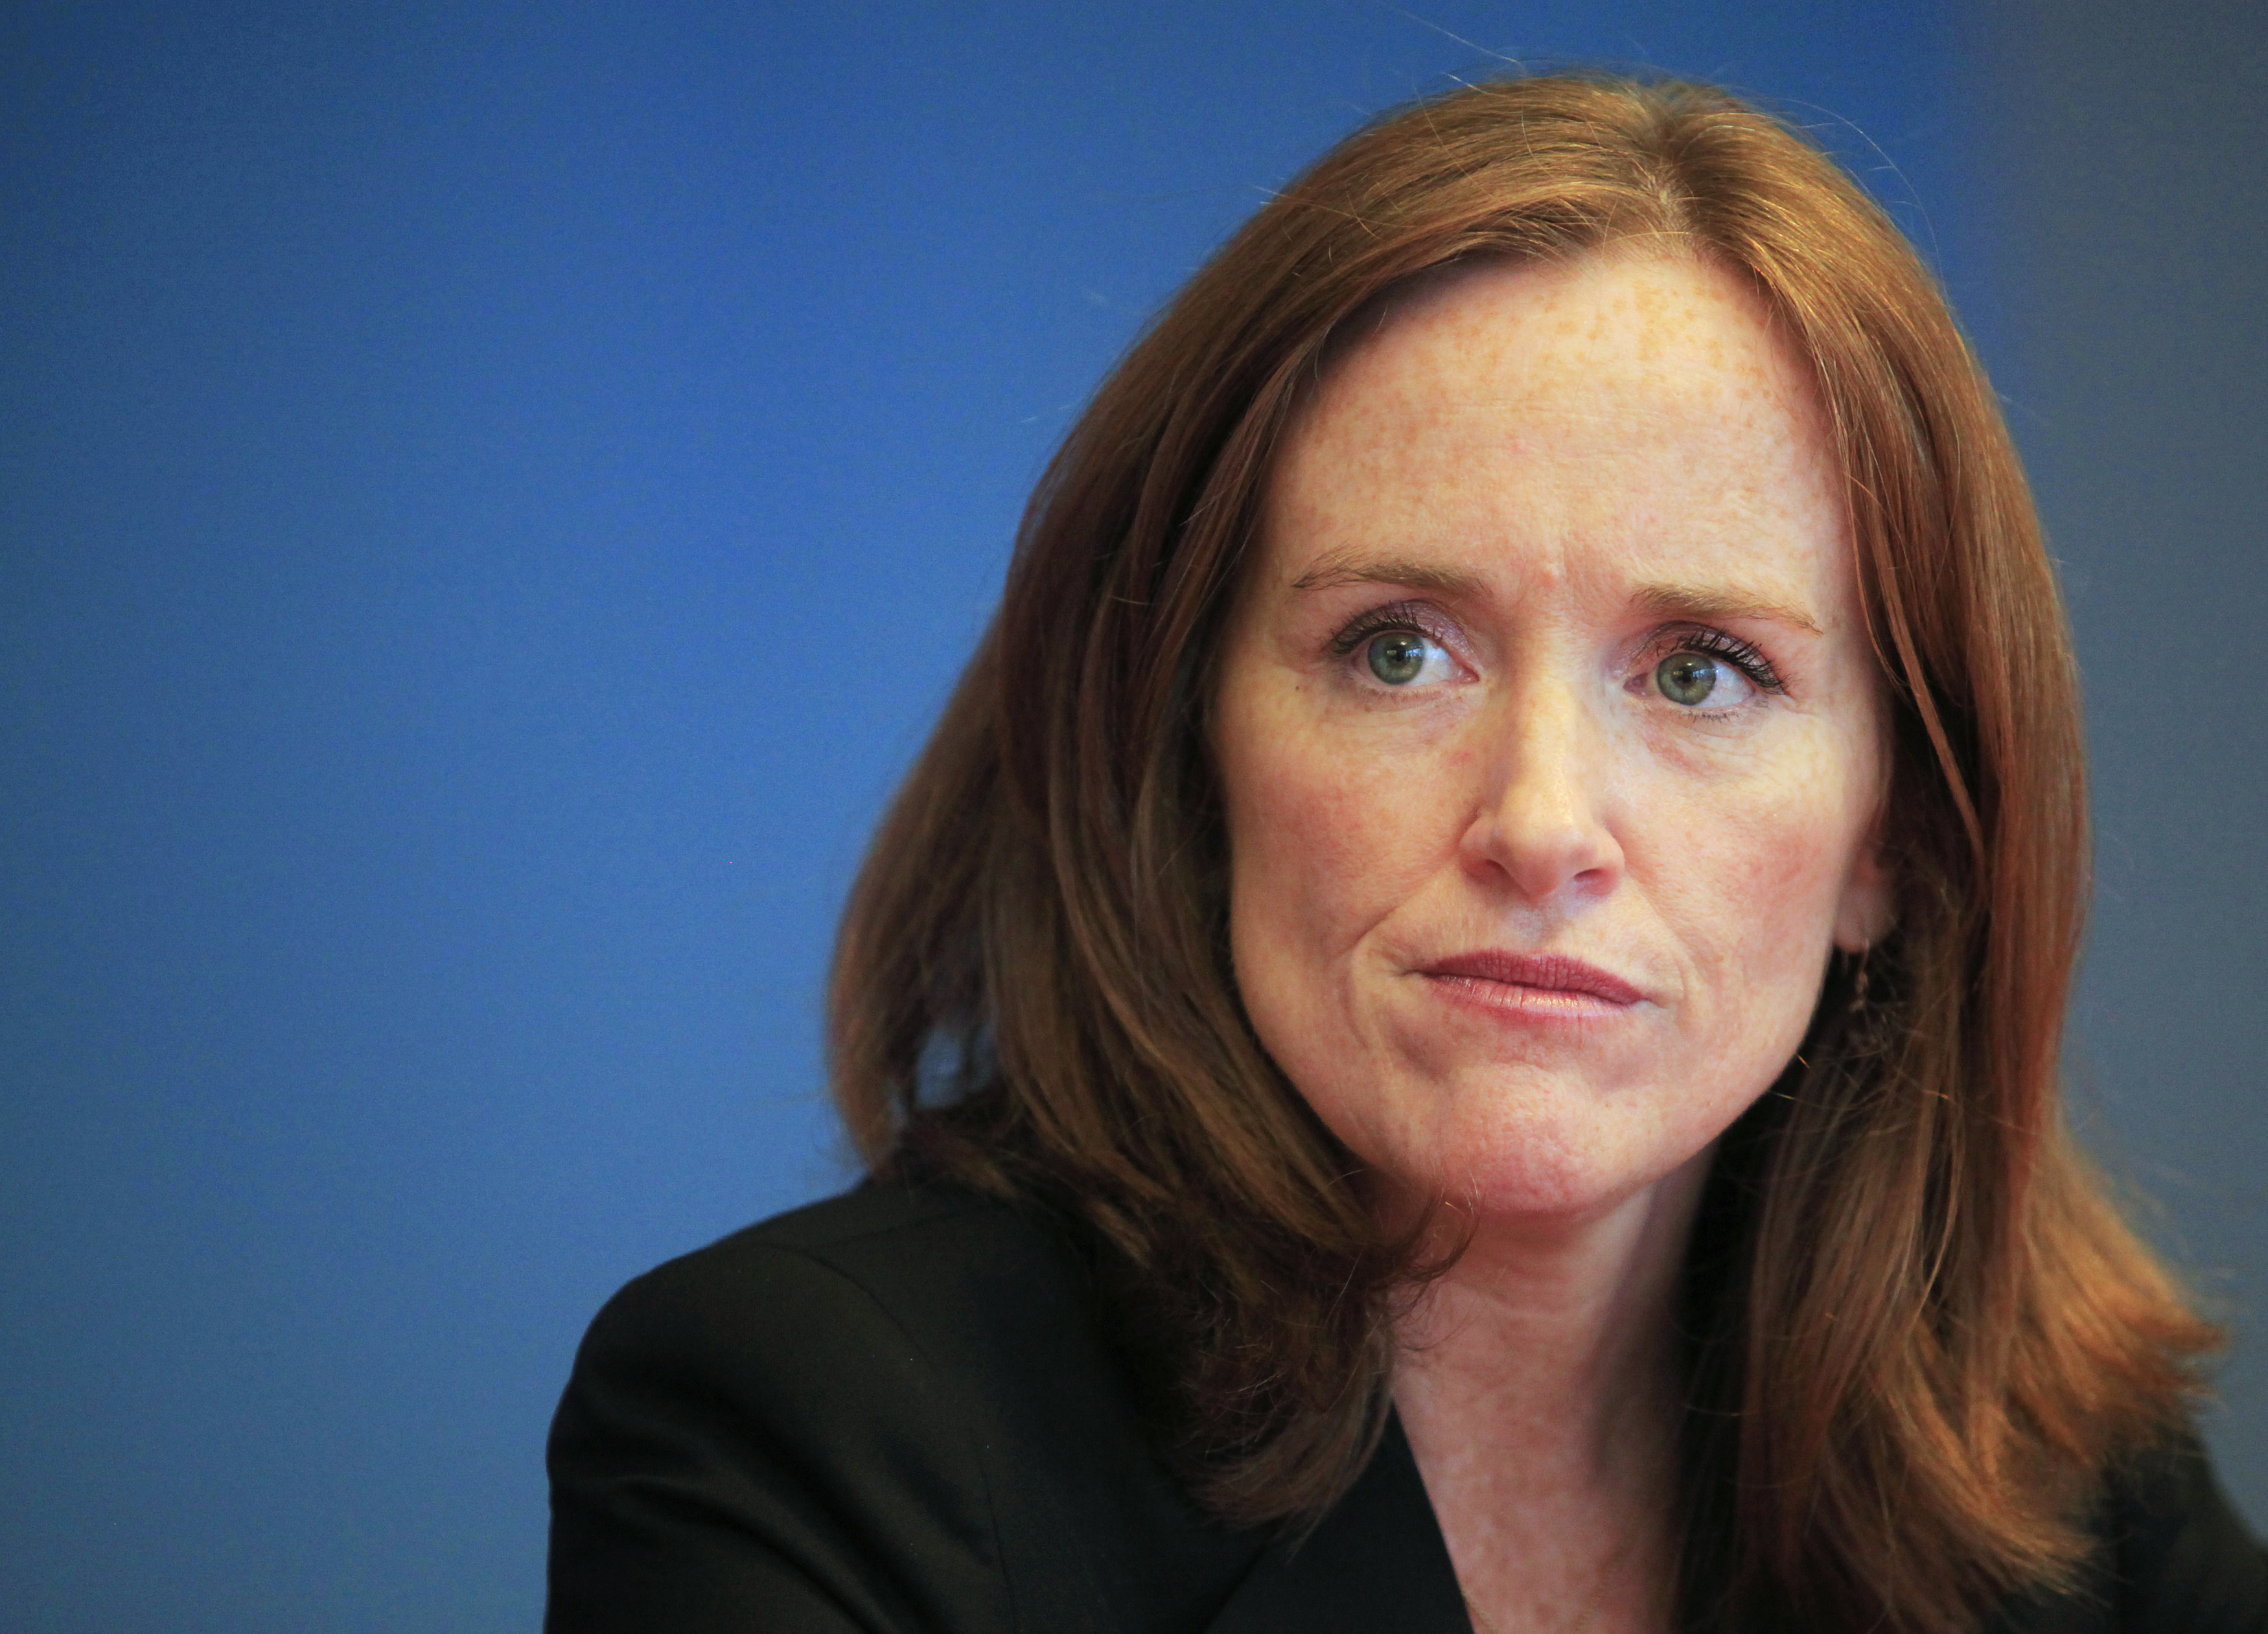 New York Democratic Rep. Kathleen Rice. Pic by Eric Thayer/REUTERS